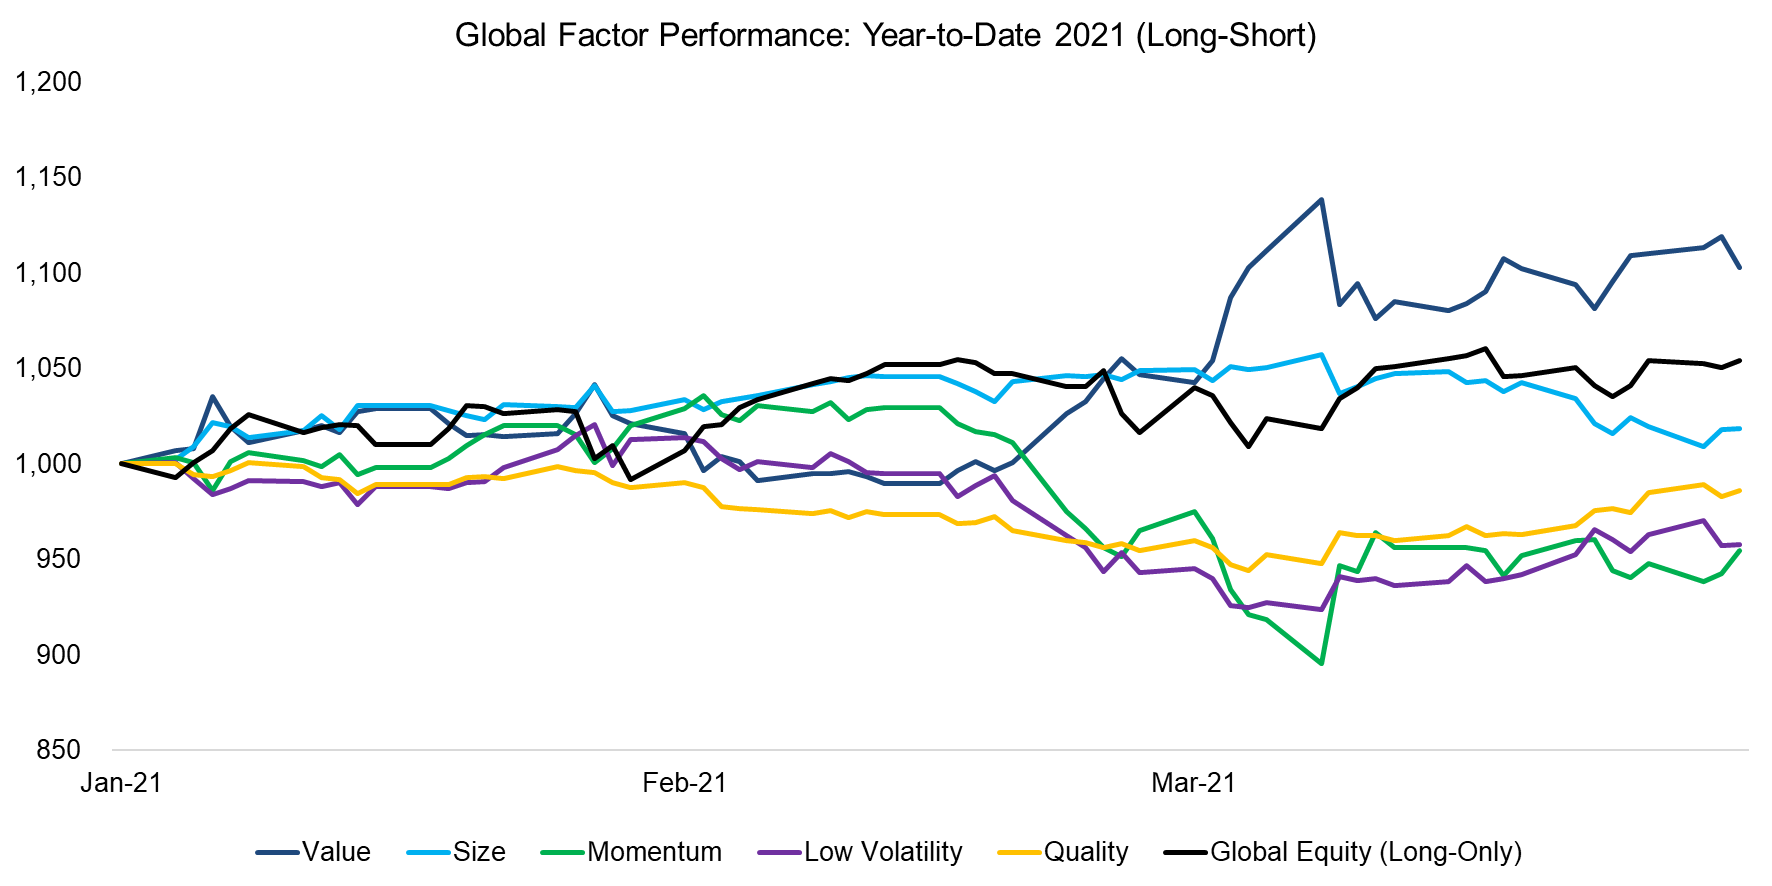 Global Factor Performance Year-to-Date 2021 (Long-Short)